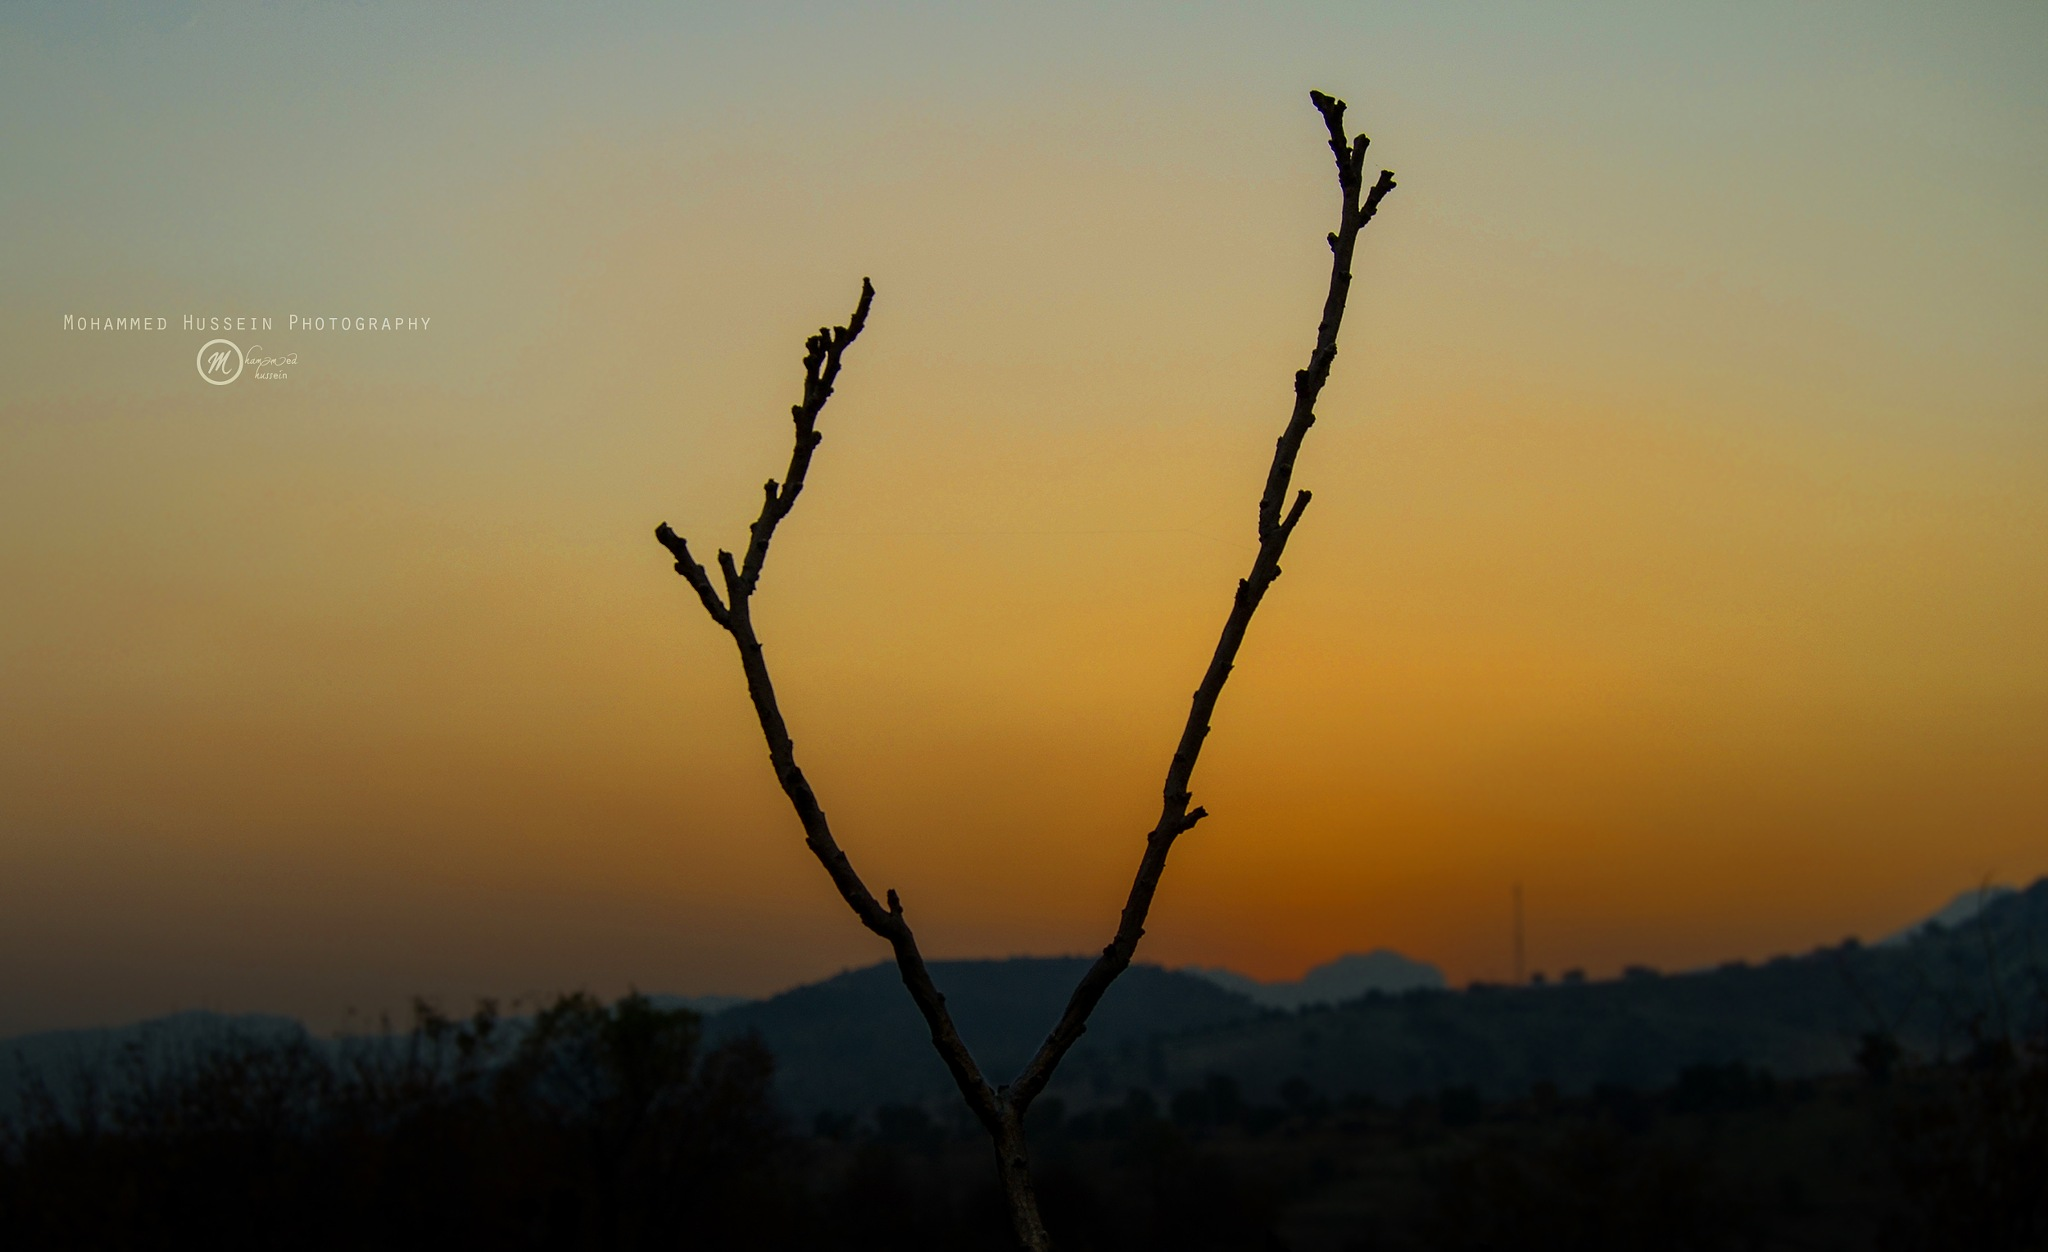 The Branches and the sunset by Mohammed Hussein Photography